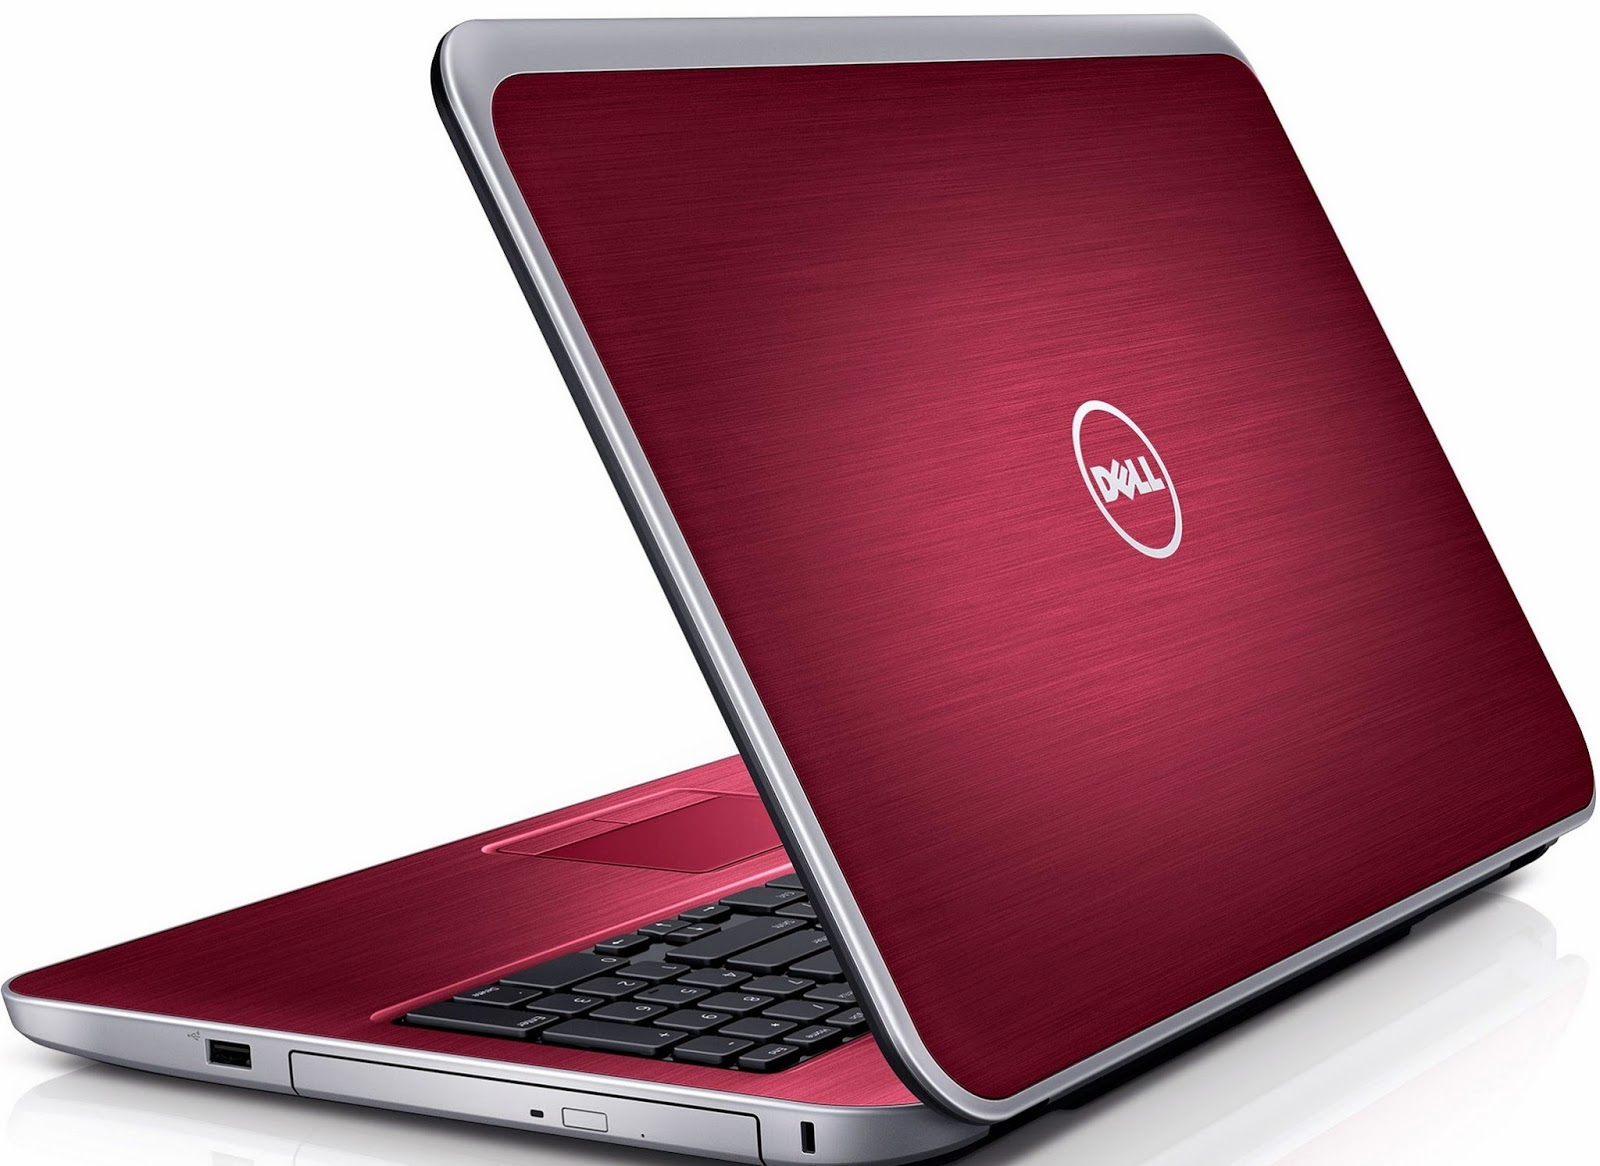 Dell Inspiron 5737 Drivers For Windows 8/8.1 (64bit)